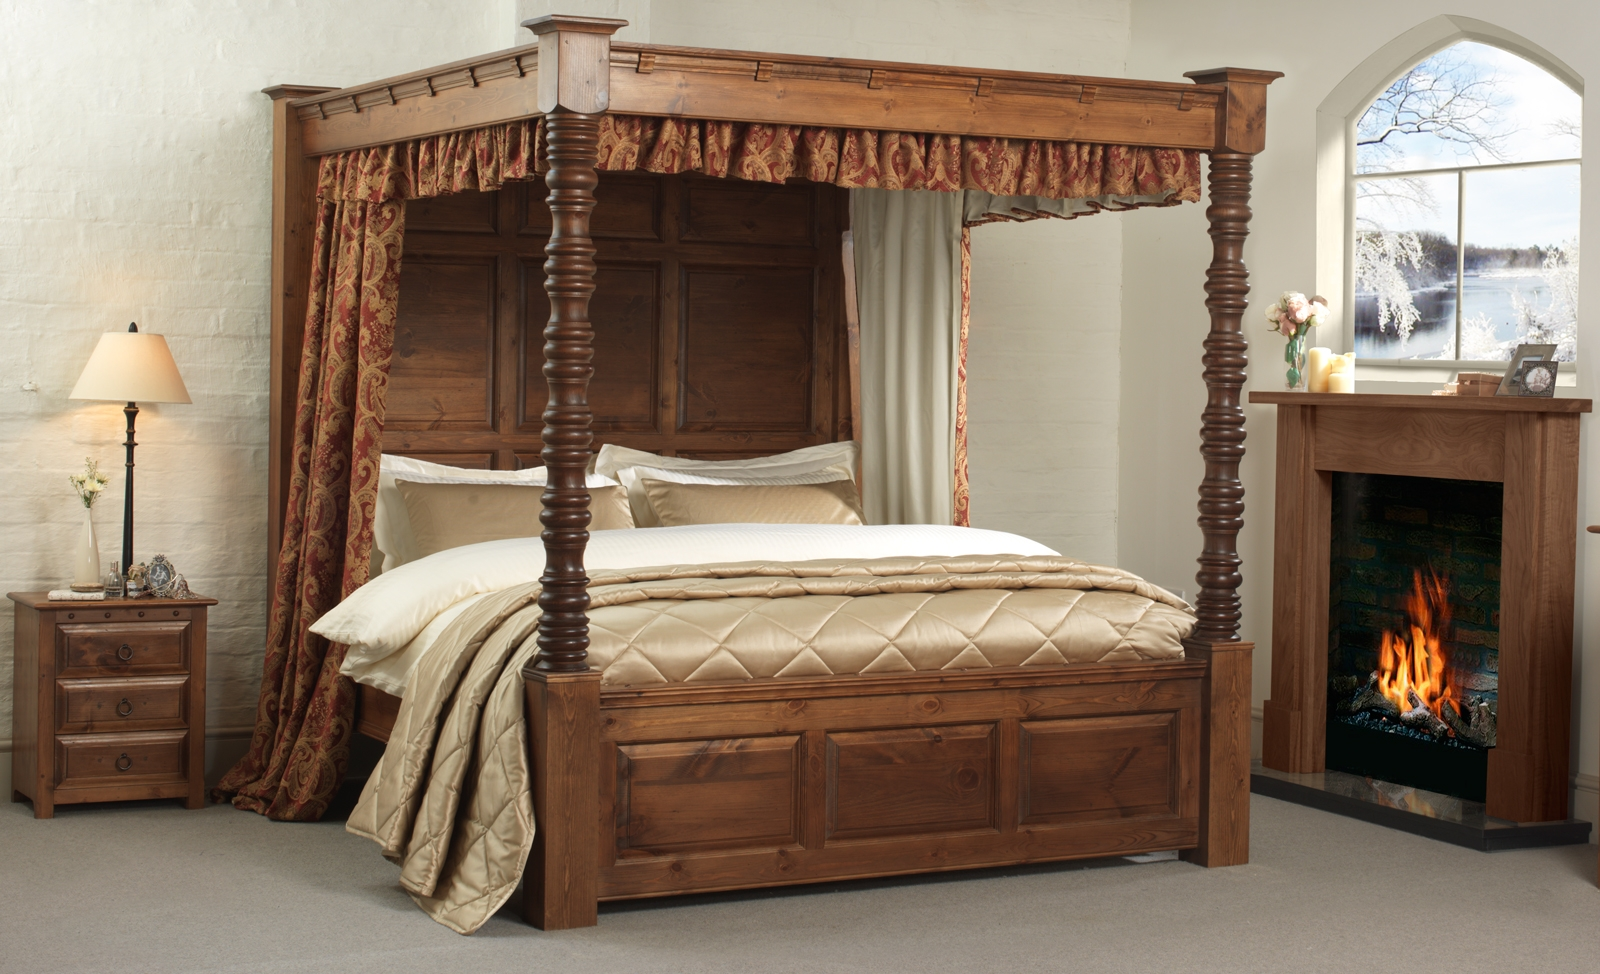 Permalink to Four Post Canopy Bed Frame